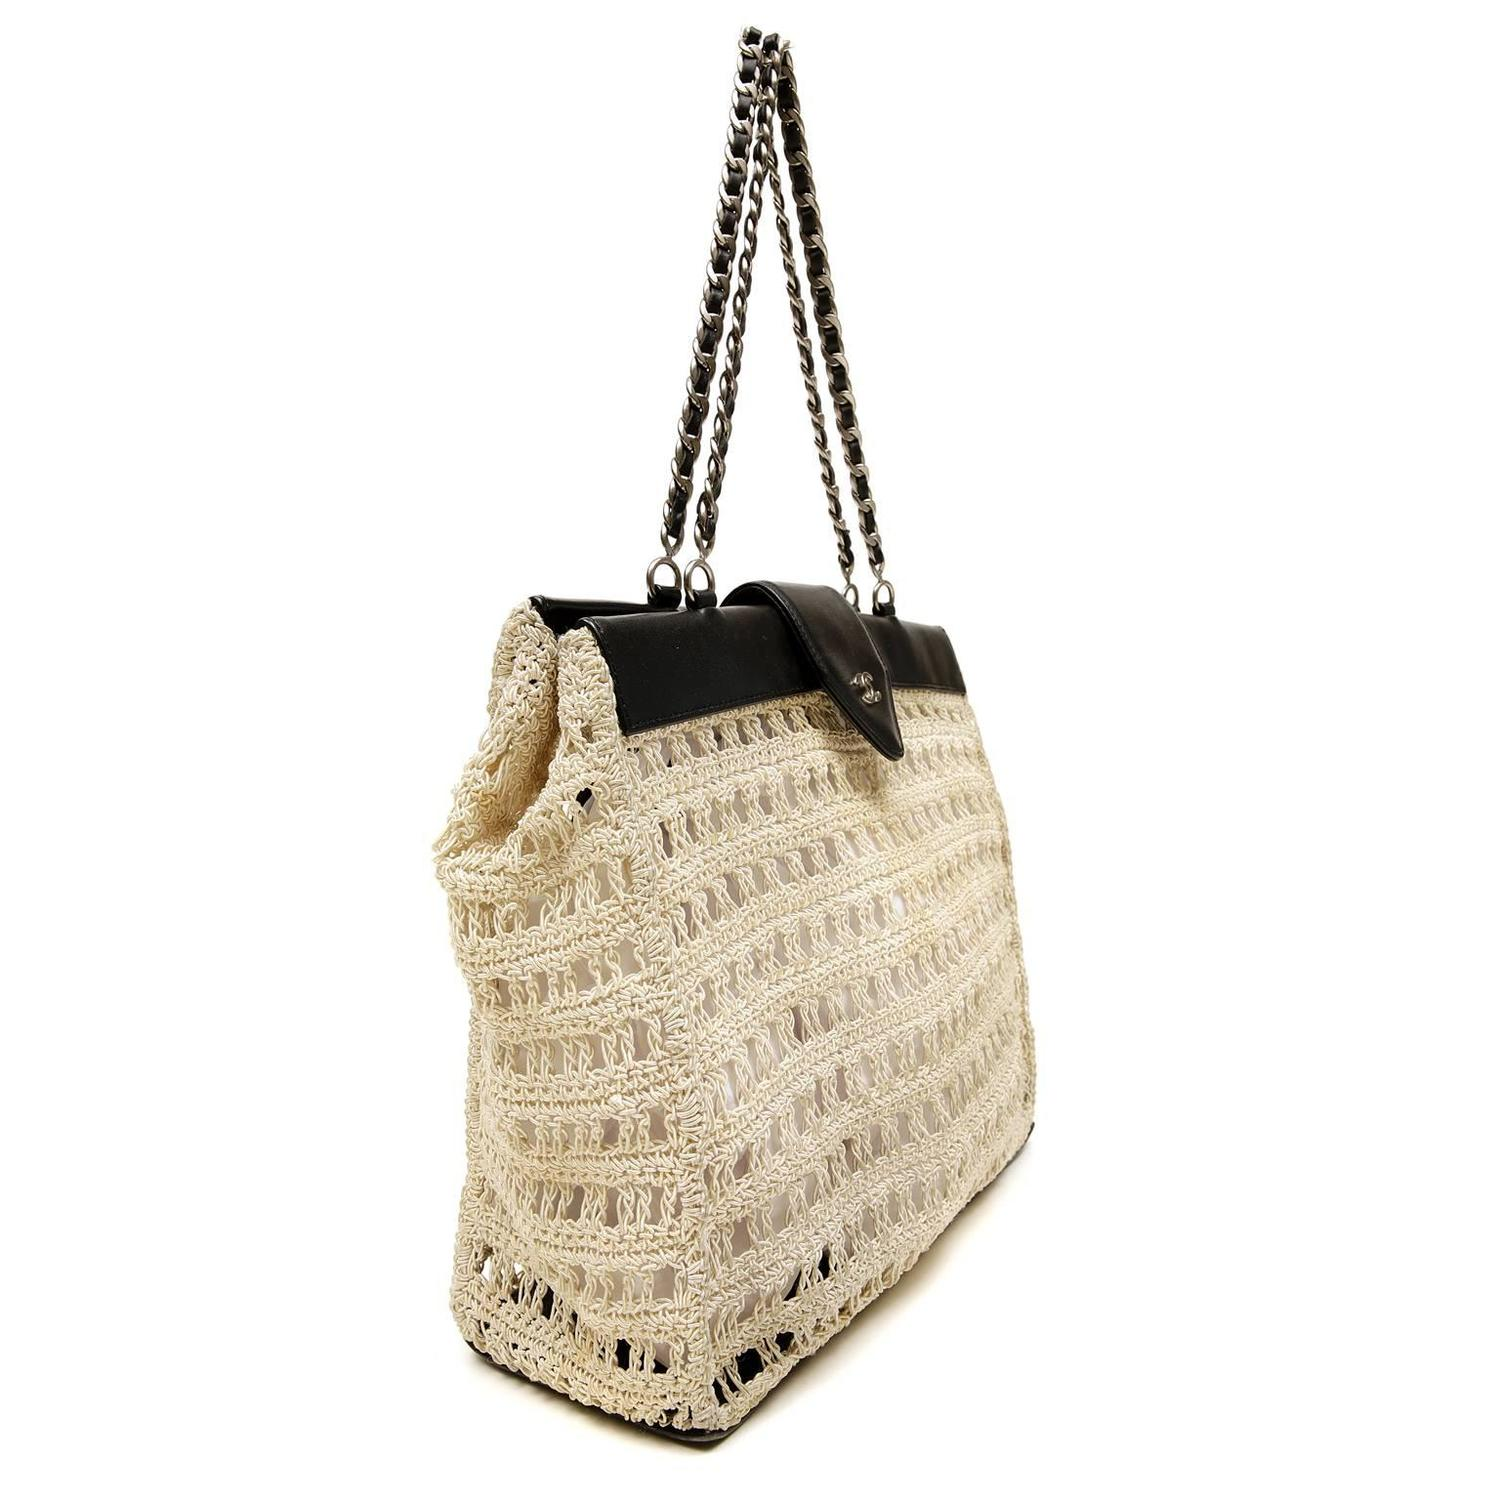 Leather Crochet Bag : Home / Fashion / Handbags and Purses / Tote Bags